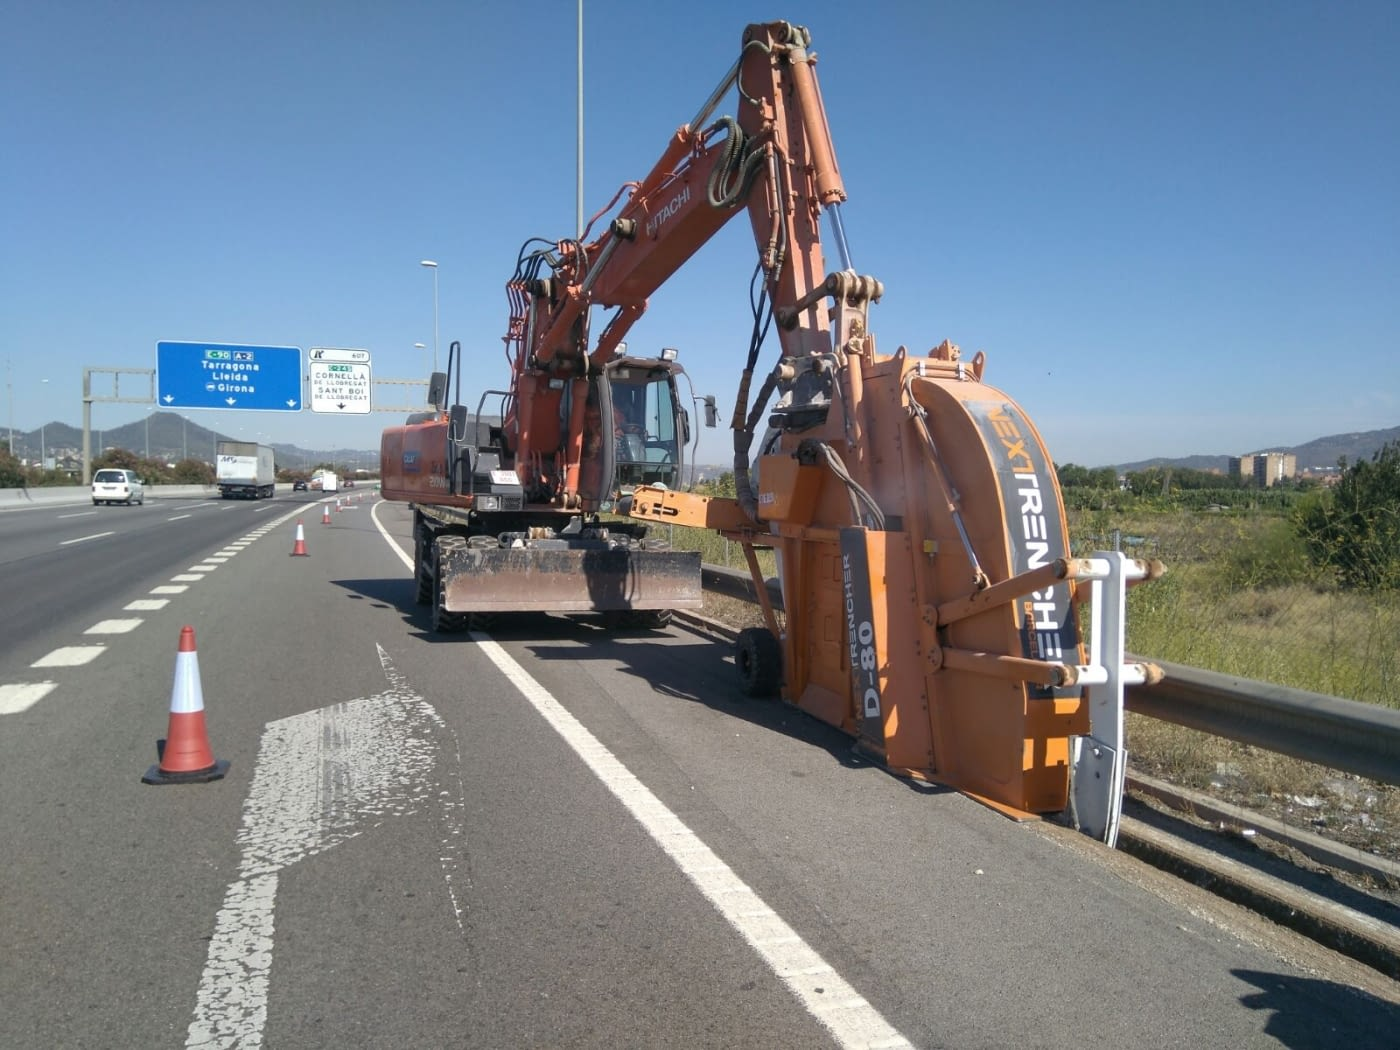 Calaf Trenching's works on A2 motorway, on the roadside ditch to bury lighting cable